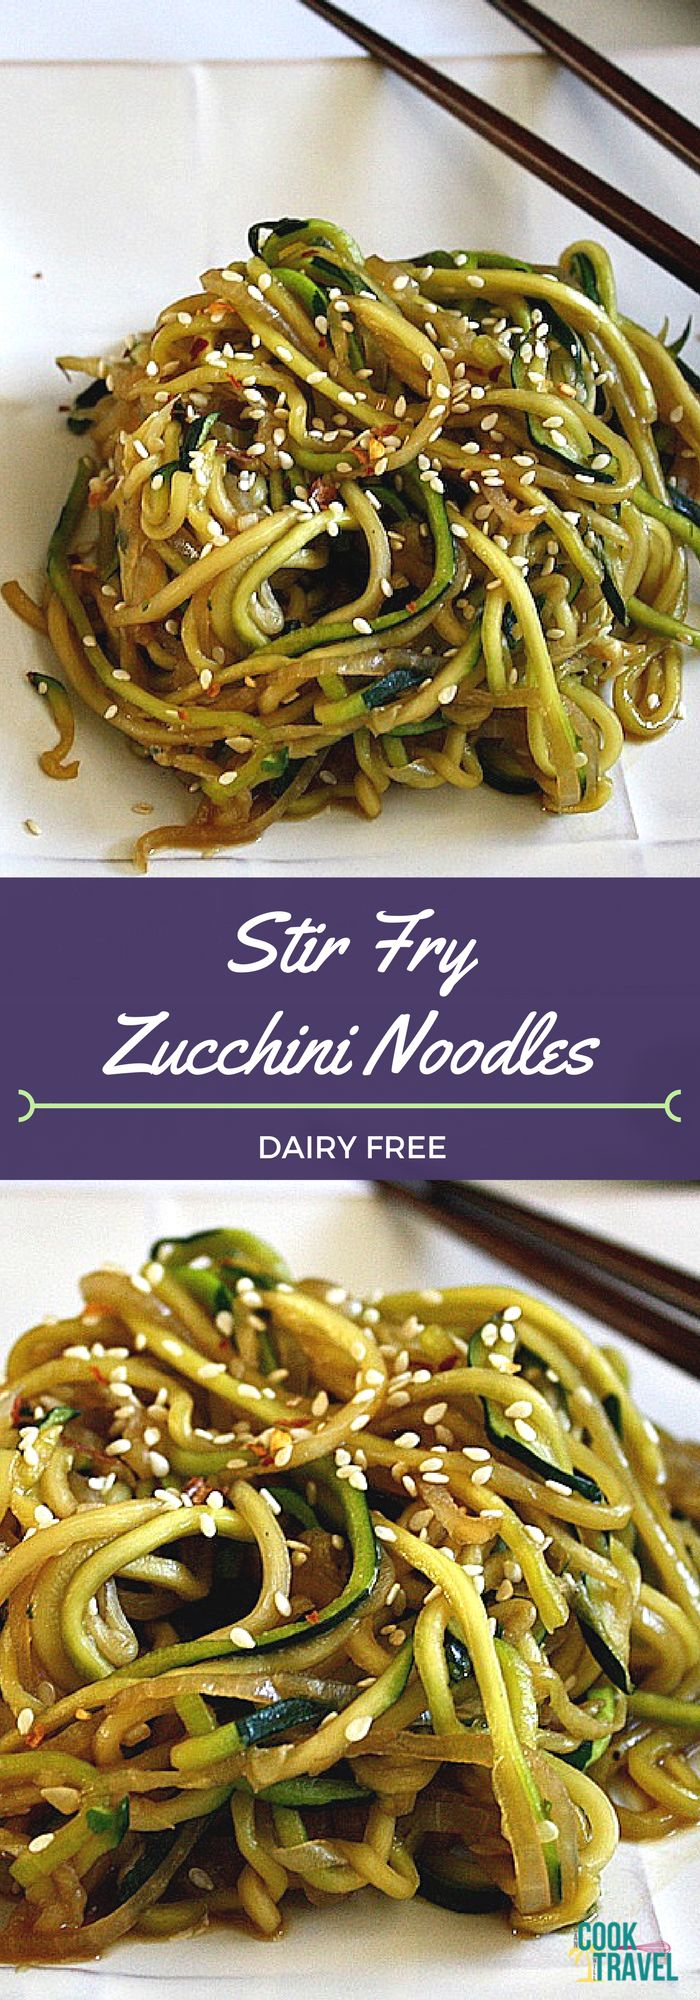 Stir Fry Zucchini Noodles are slightly spicy, fun to make, vegan and dairy free, and totally delicious. Eating food that's good for you becomes fun with this healthy recipe!